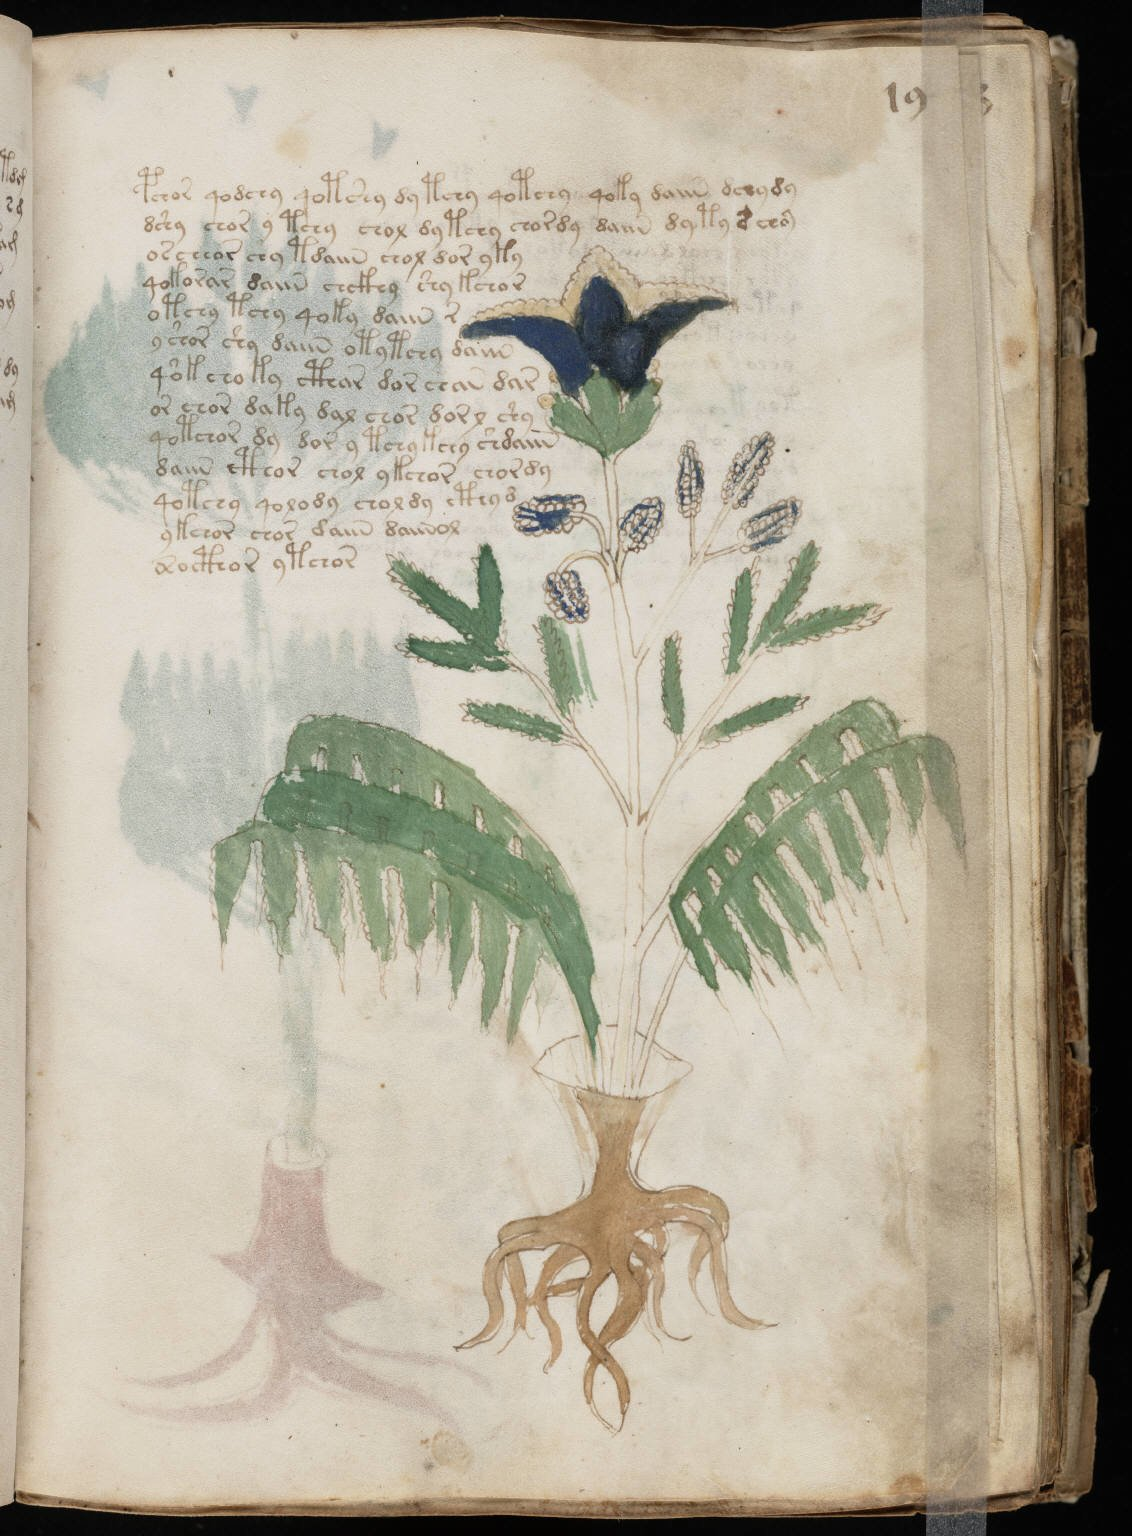 The voynich manuscript - palatino press.